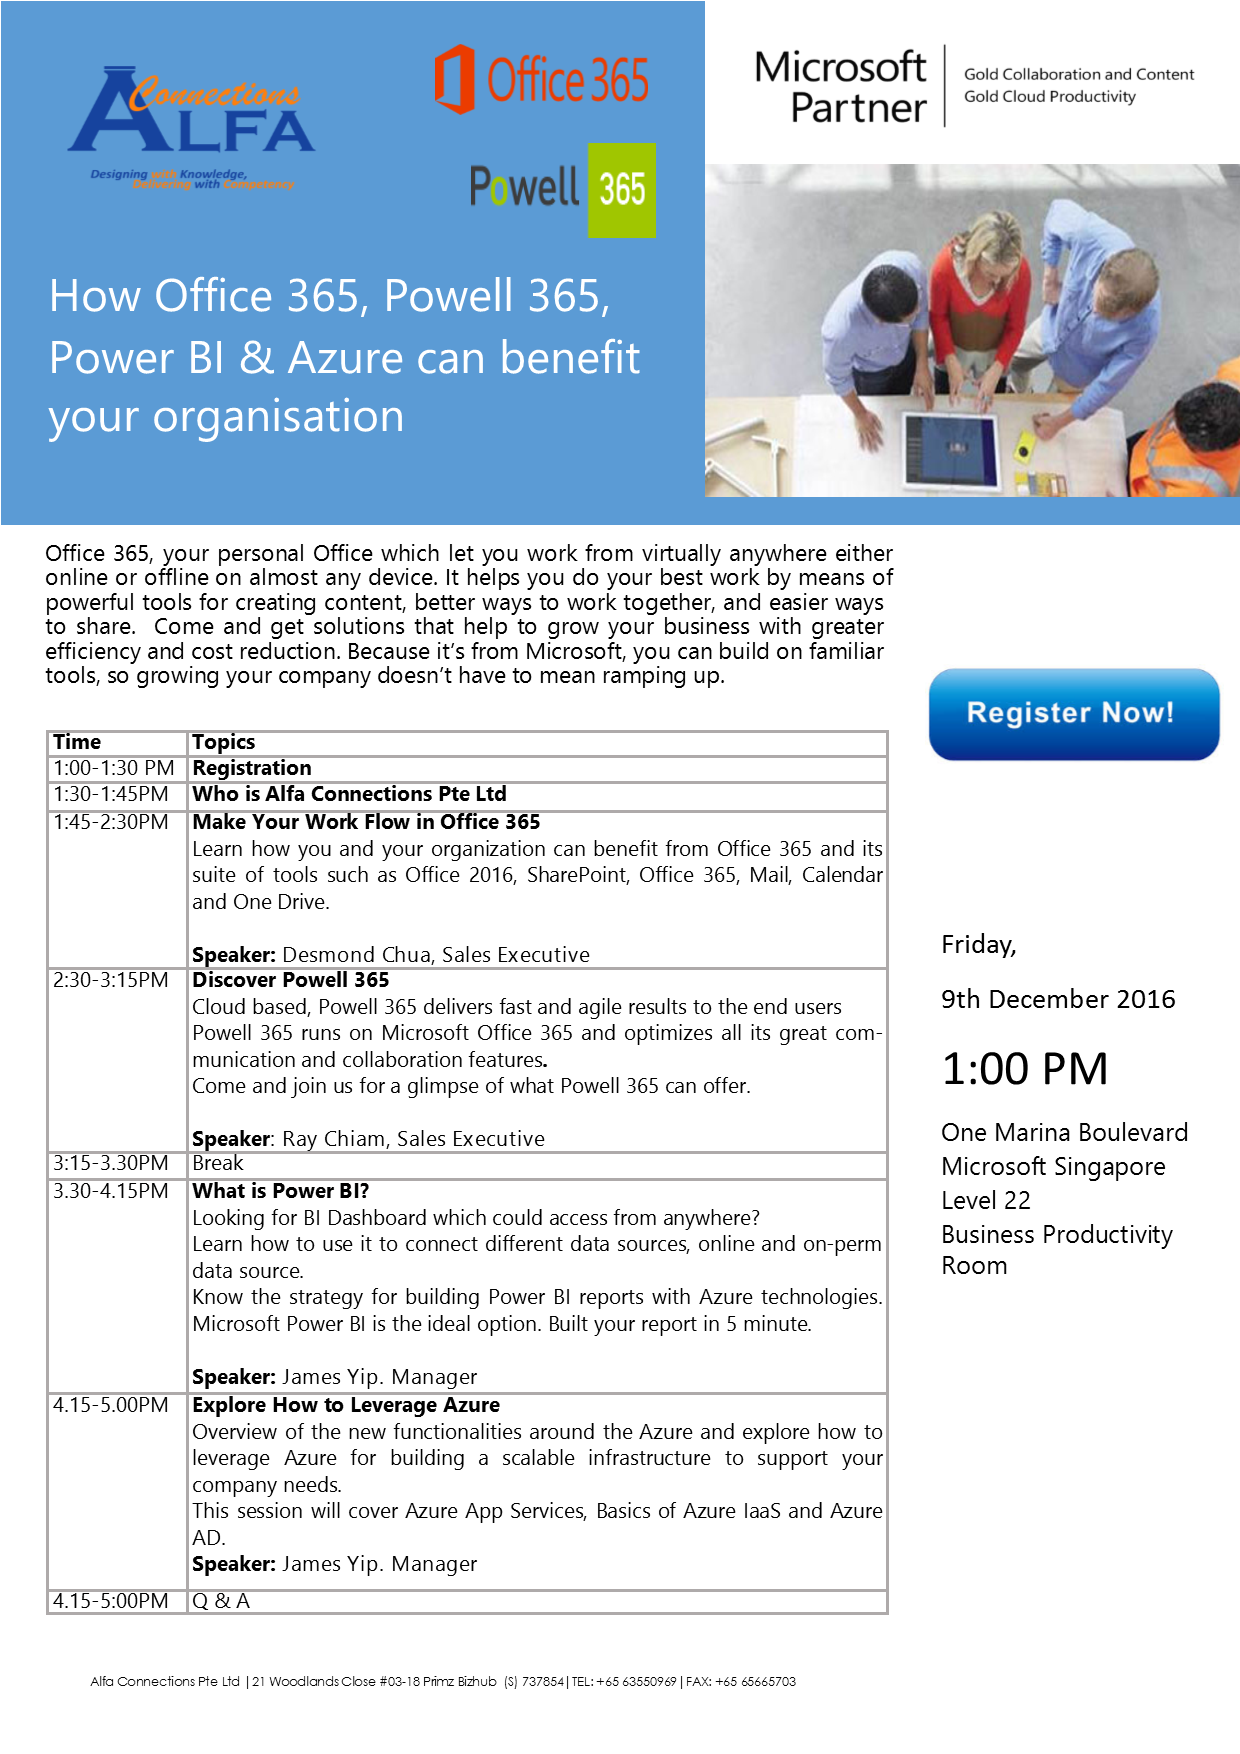 How Office 365, Powell 365, Power BI & Azure can benefit your organisation